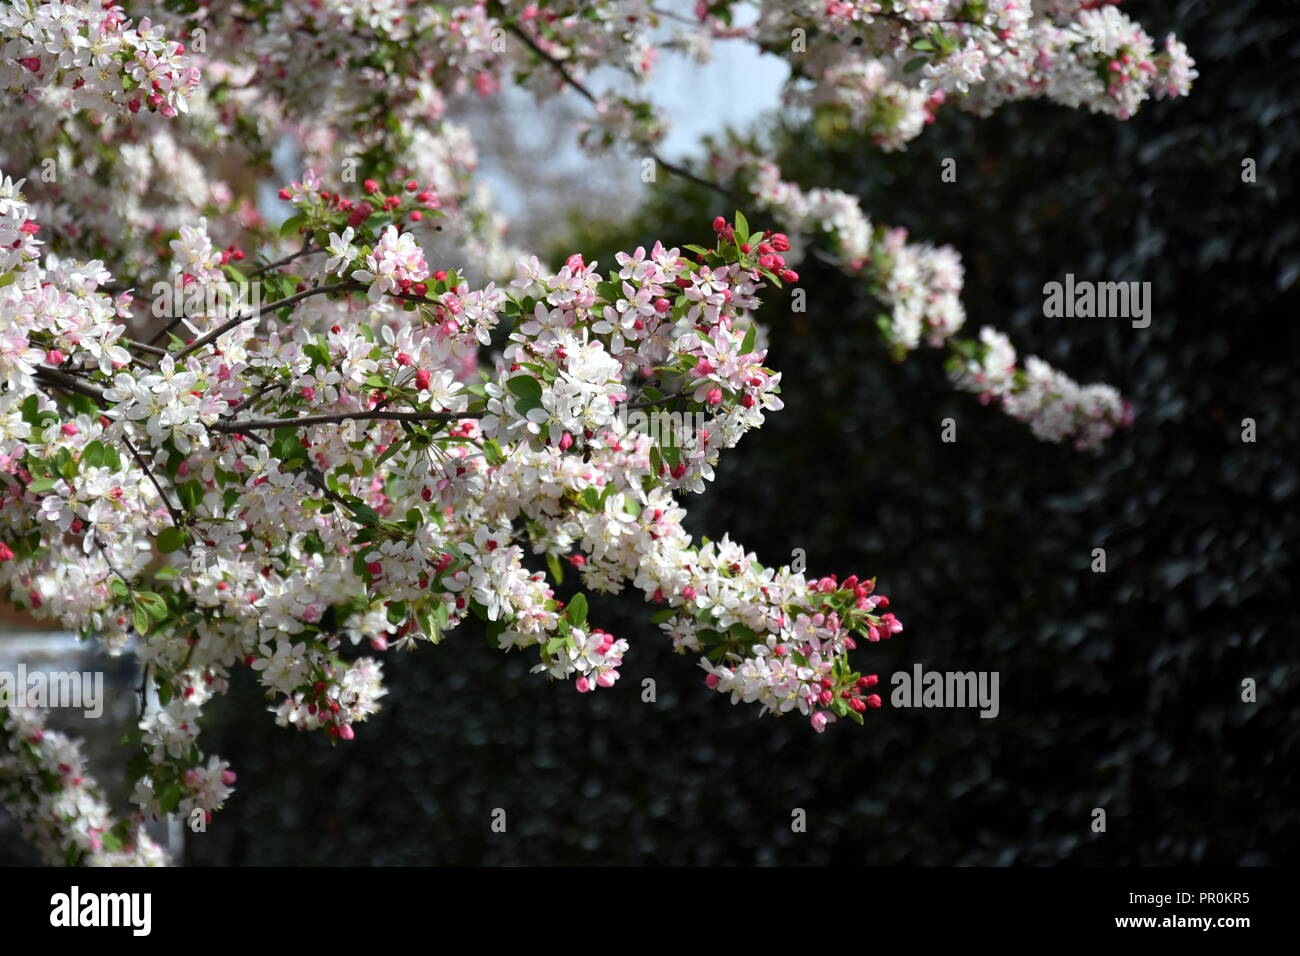 Pink White Cherry Blossom In Full Bloom Cherry Flowers In Small